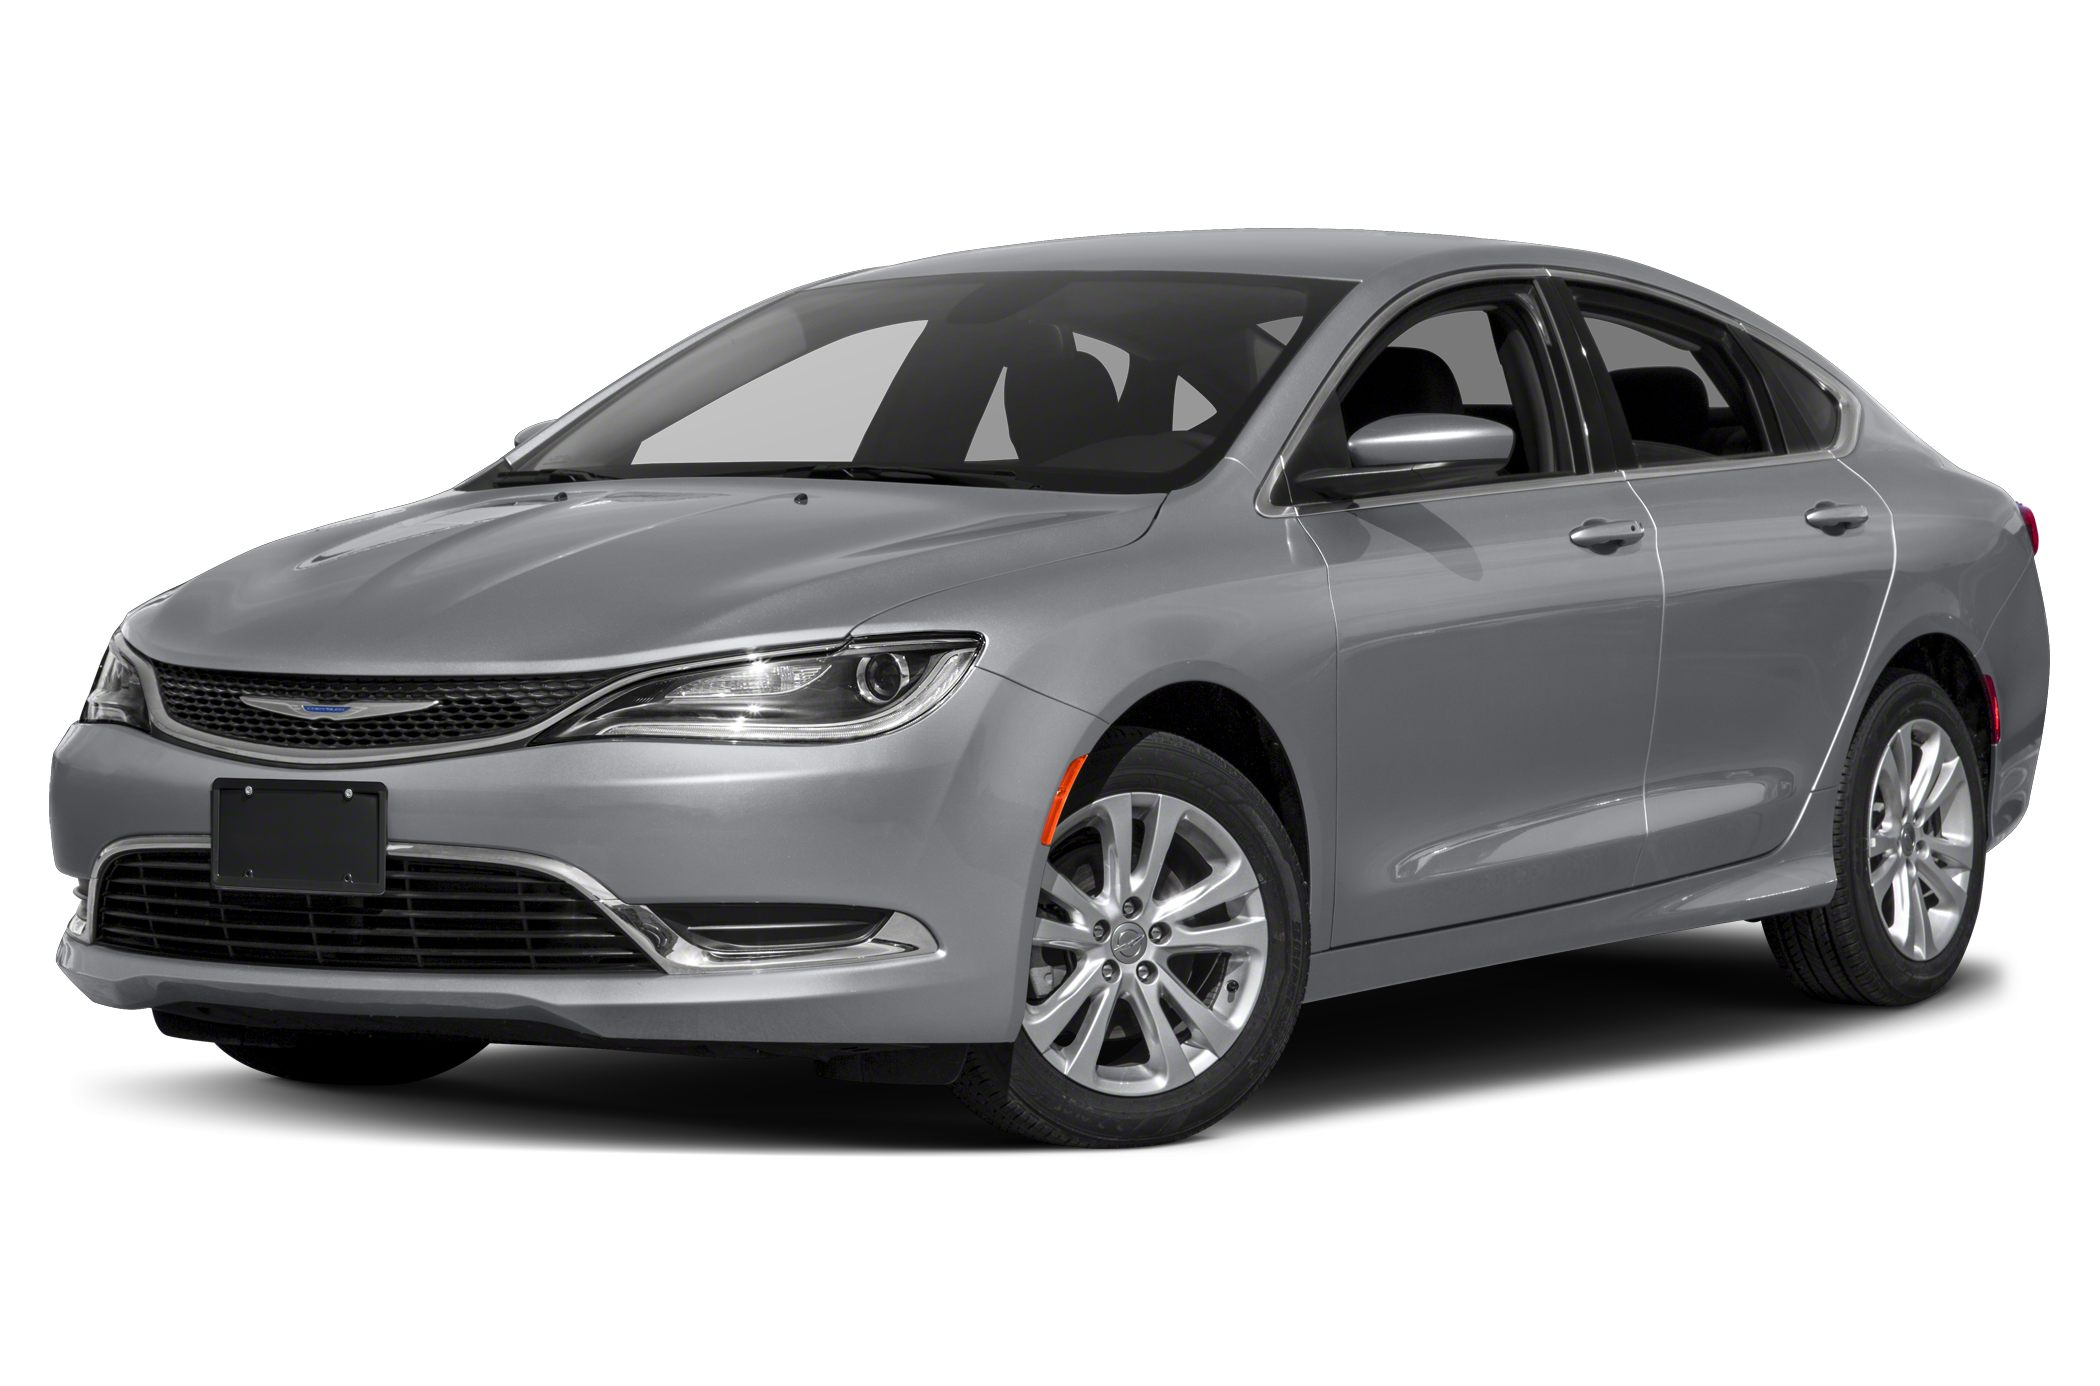 2015 Chrysler 200 Limited Miles 0Color UNSPECIFIED Stock N692819 VIN 1C3CCCAB6FN692819